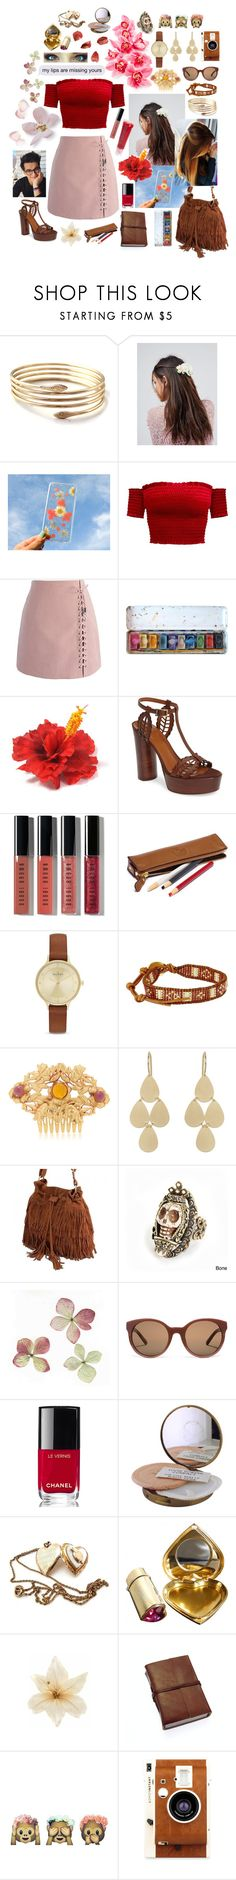 """My lips are missing yours. Spring Themed"" by marta-cassiano-santos ❤ liked on Polyvore featuring ASOS, Chicwish, Aquatalia by Marvin K., Bobbi Brown Cosmetics, Skagen, Chan Luu, Rodarte, Irene Neuwirth, Retrò and Sweet Romance"